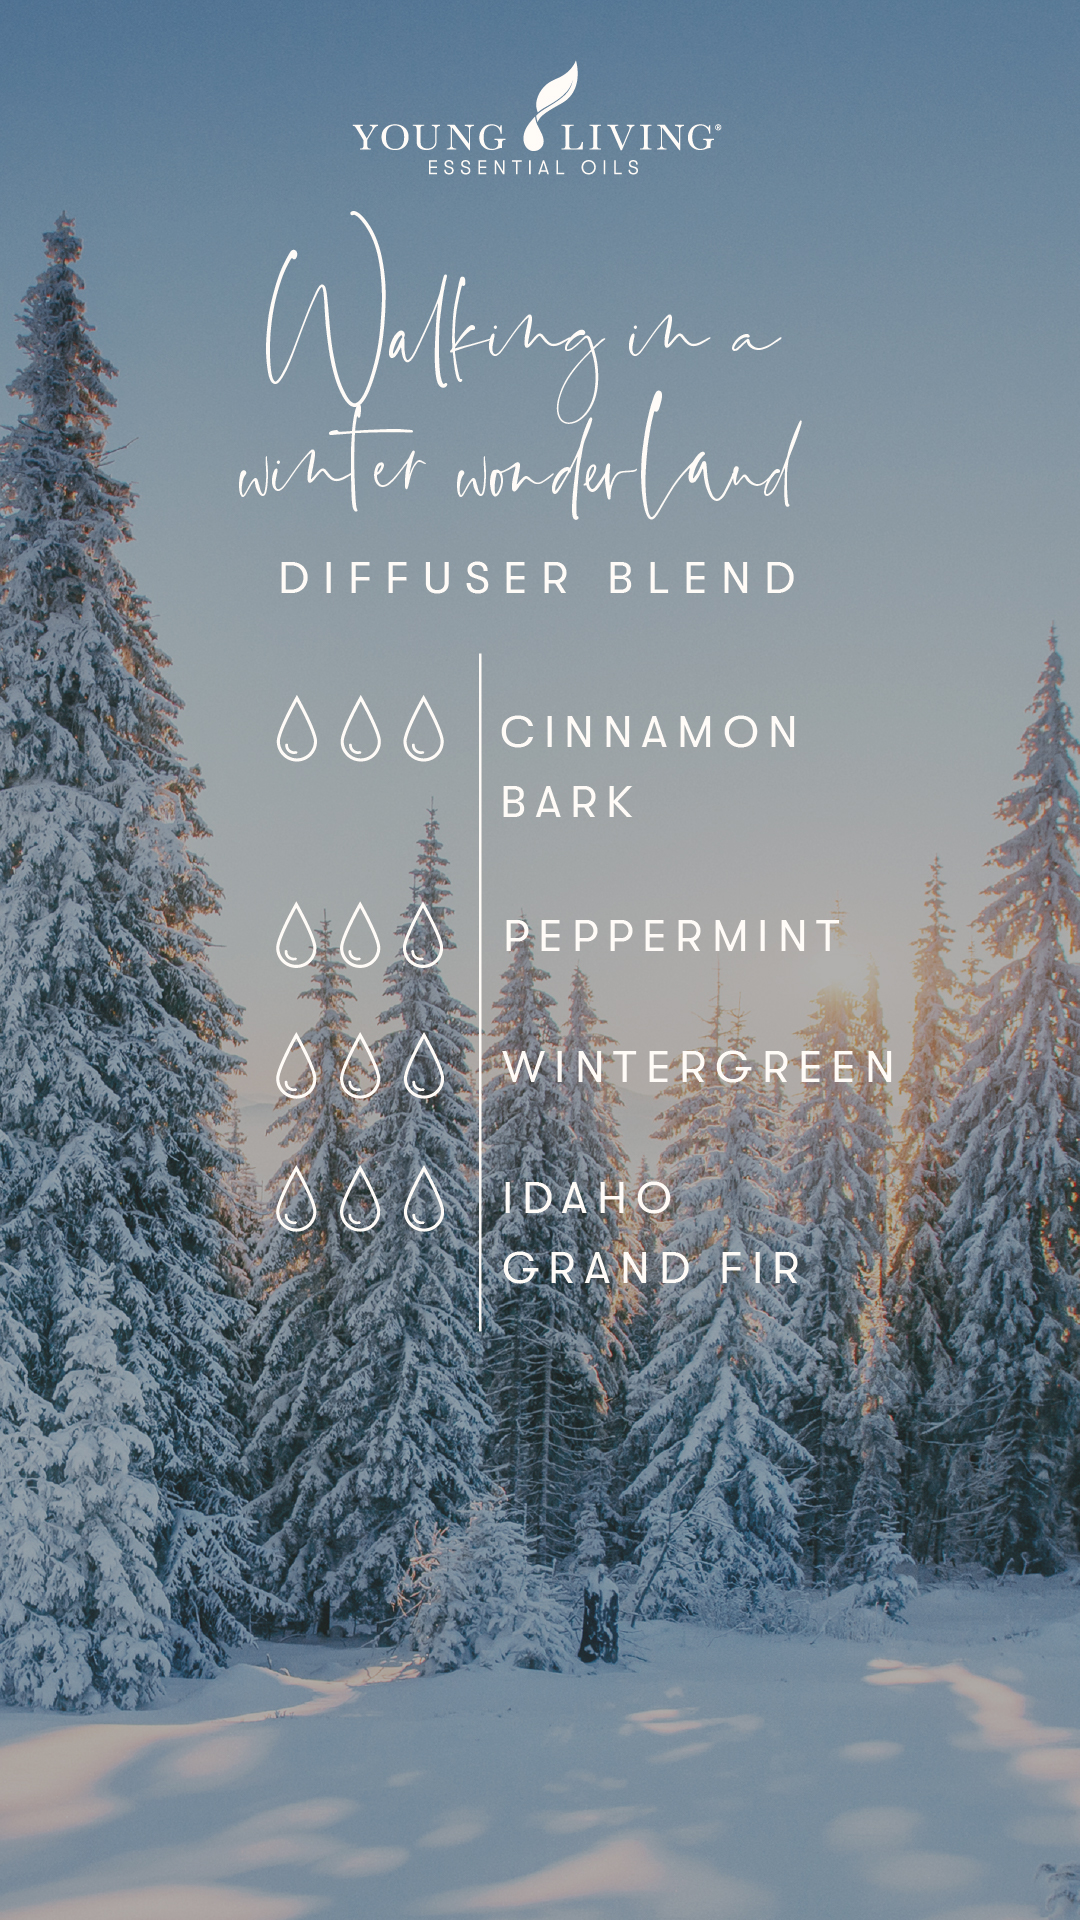 Young Living Essential Oil Blends - Walking in a winter wonderland